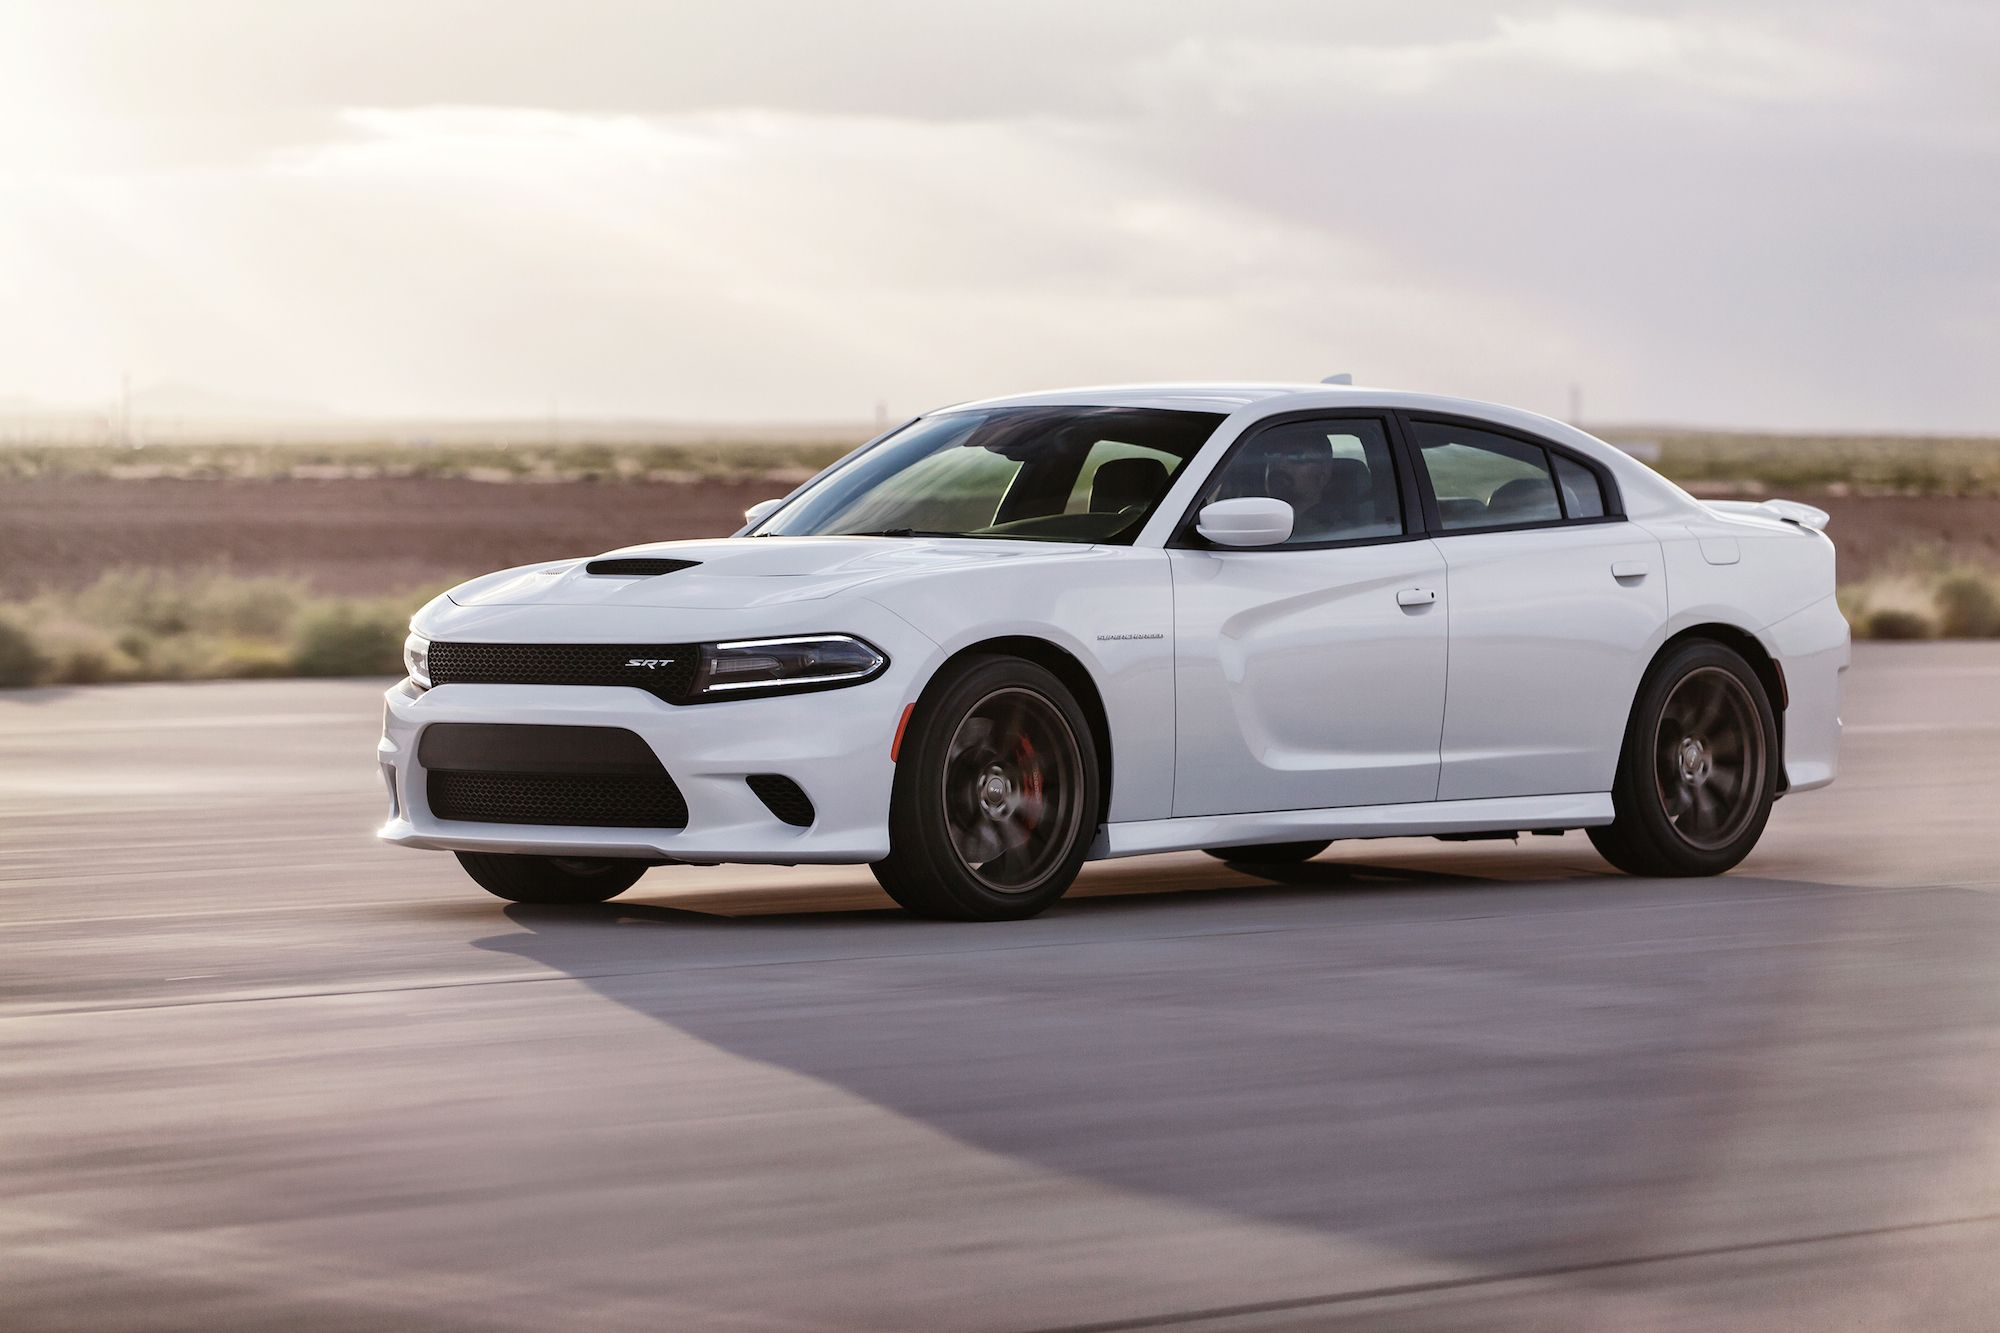 2015 Dodge Charger Review And Price When You Want To Have The